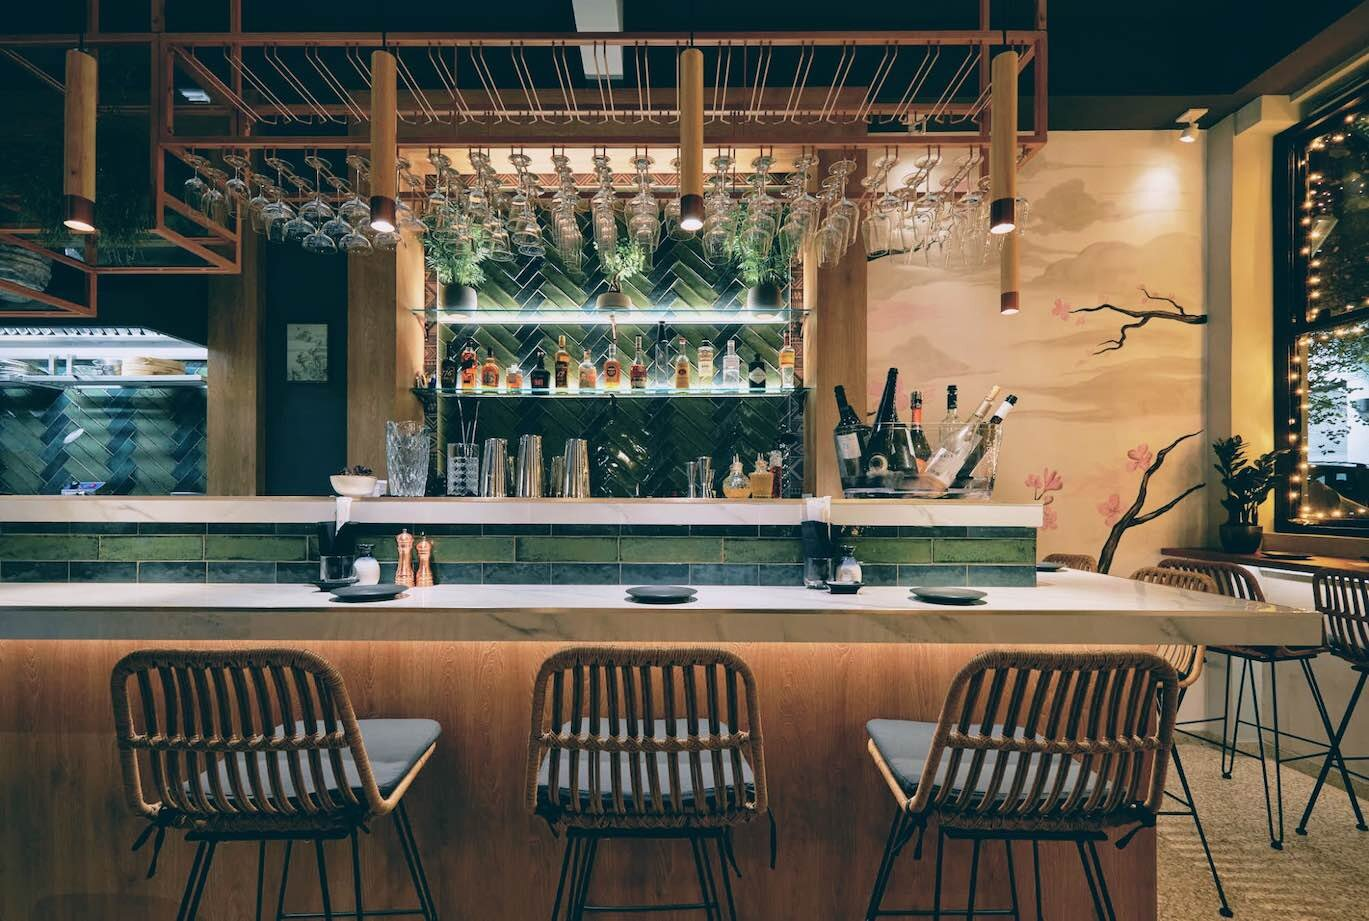 Athens: delicious Nikkei-inspired food bites at Huaca